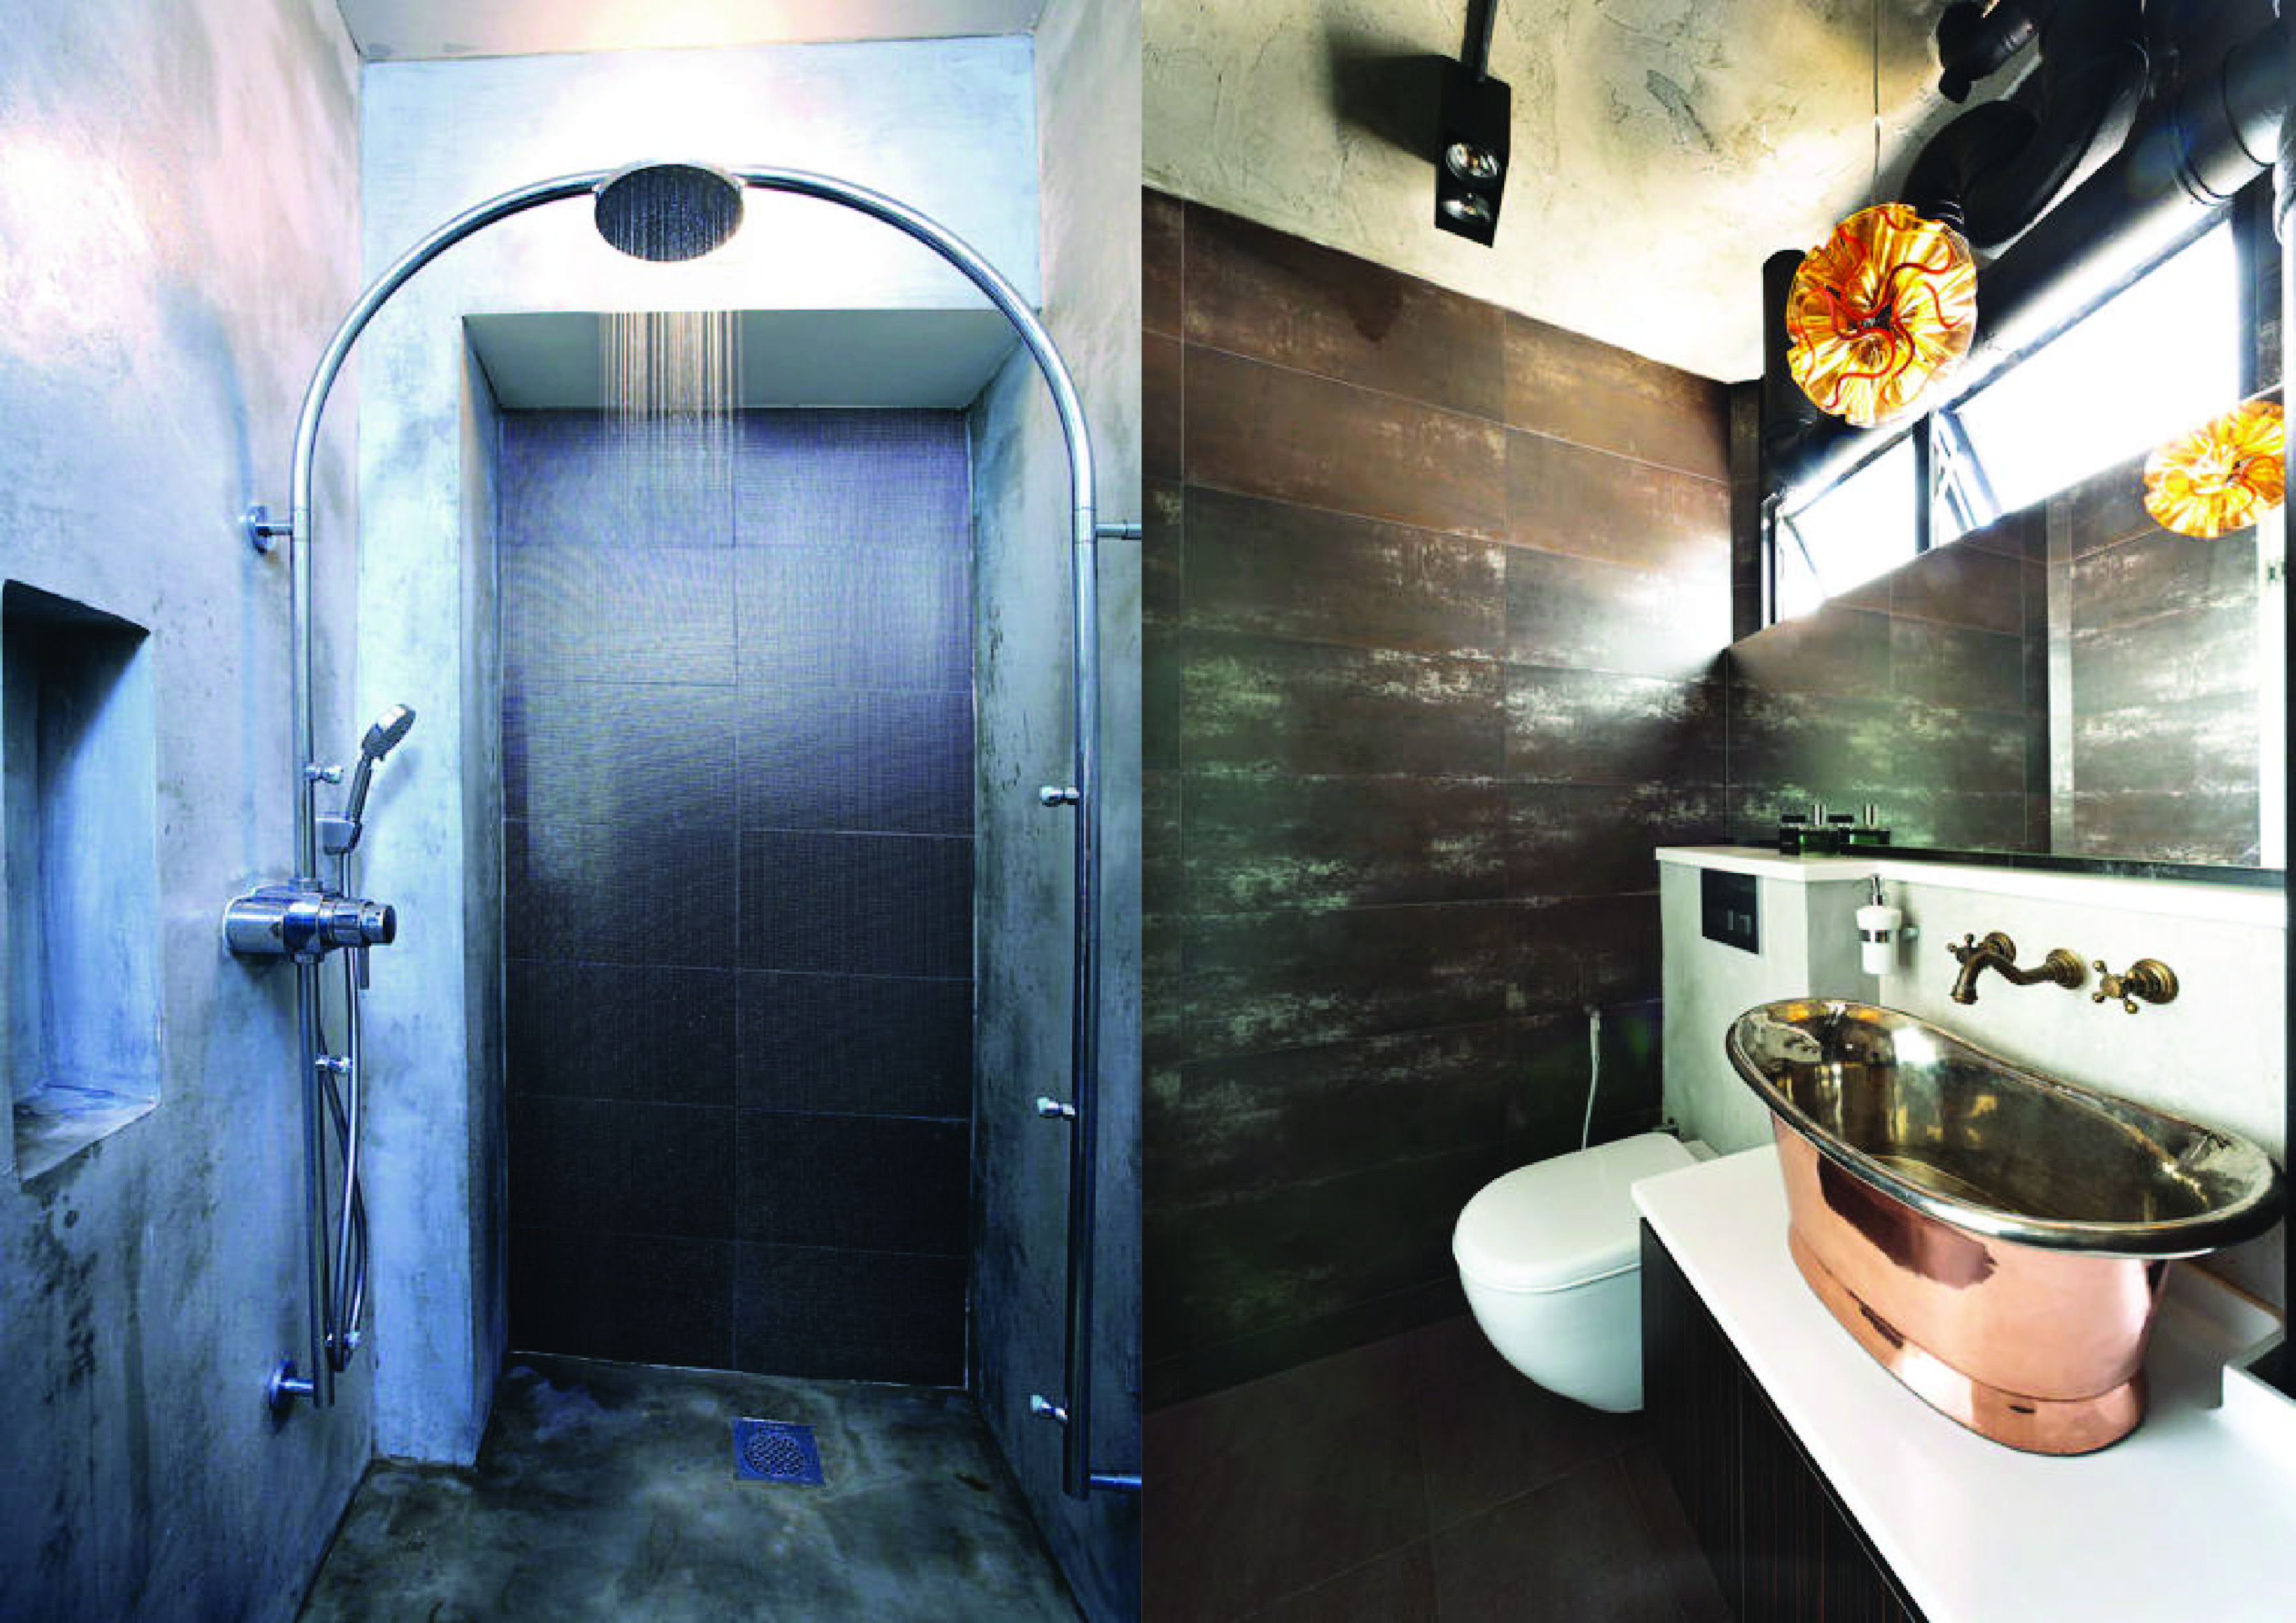 16 Hdb Toilets That Will Make You Feel Like You Re Lost In